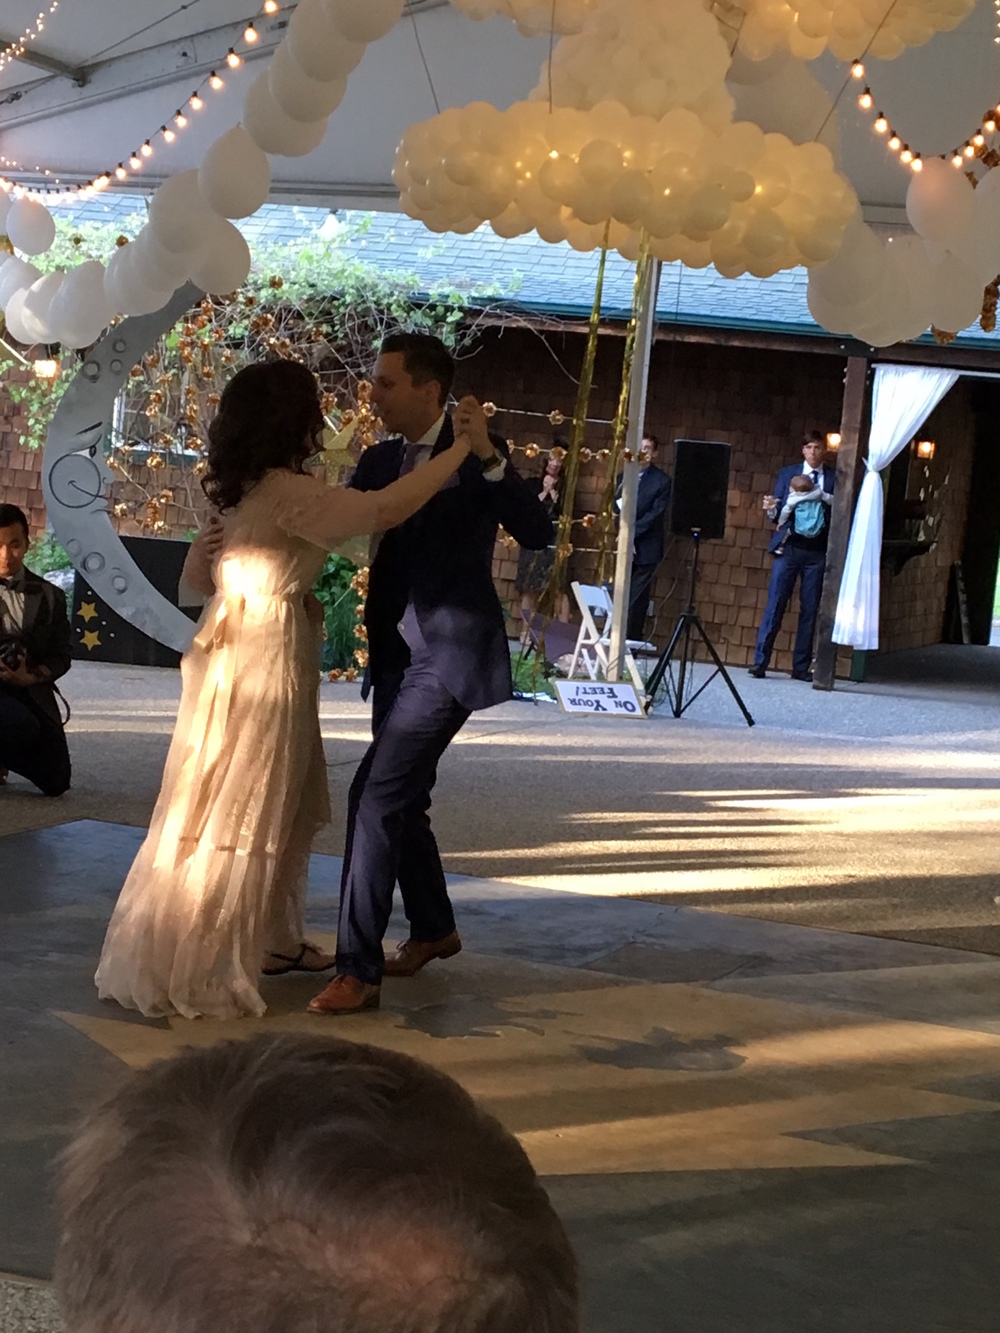 The first dance: Alex and Glory as husband and wife (with big brother and baby watching)!